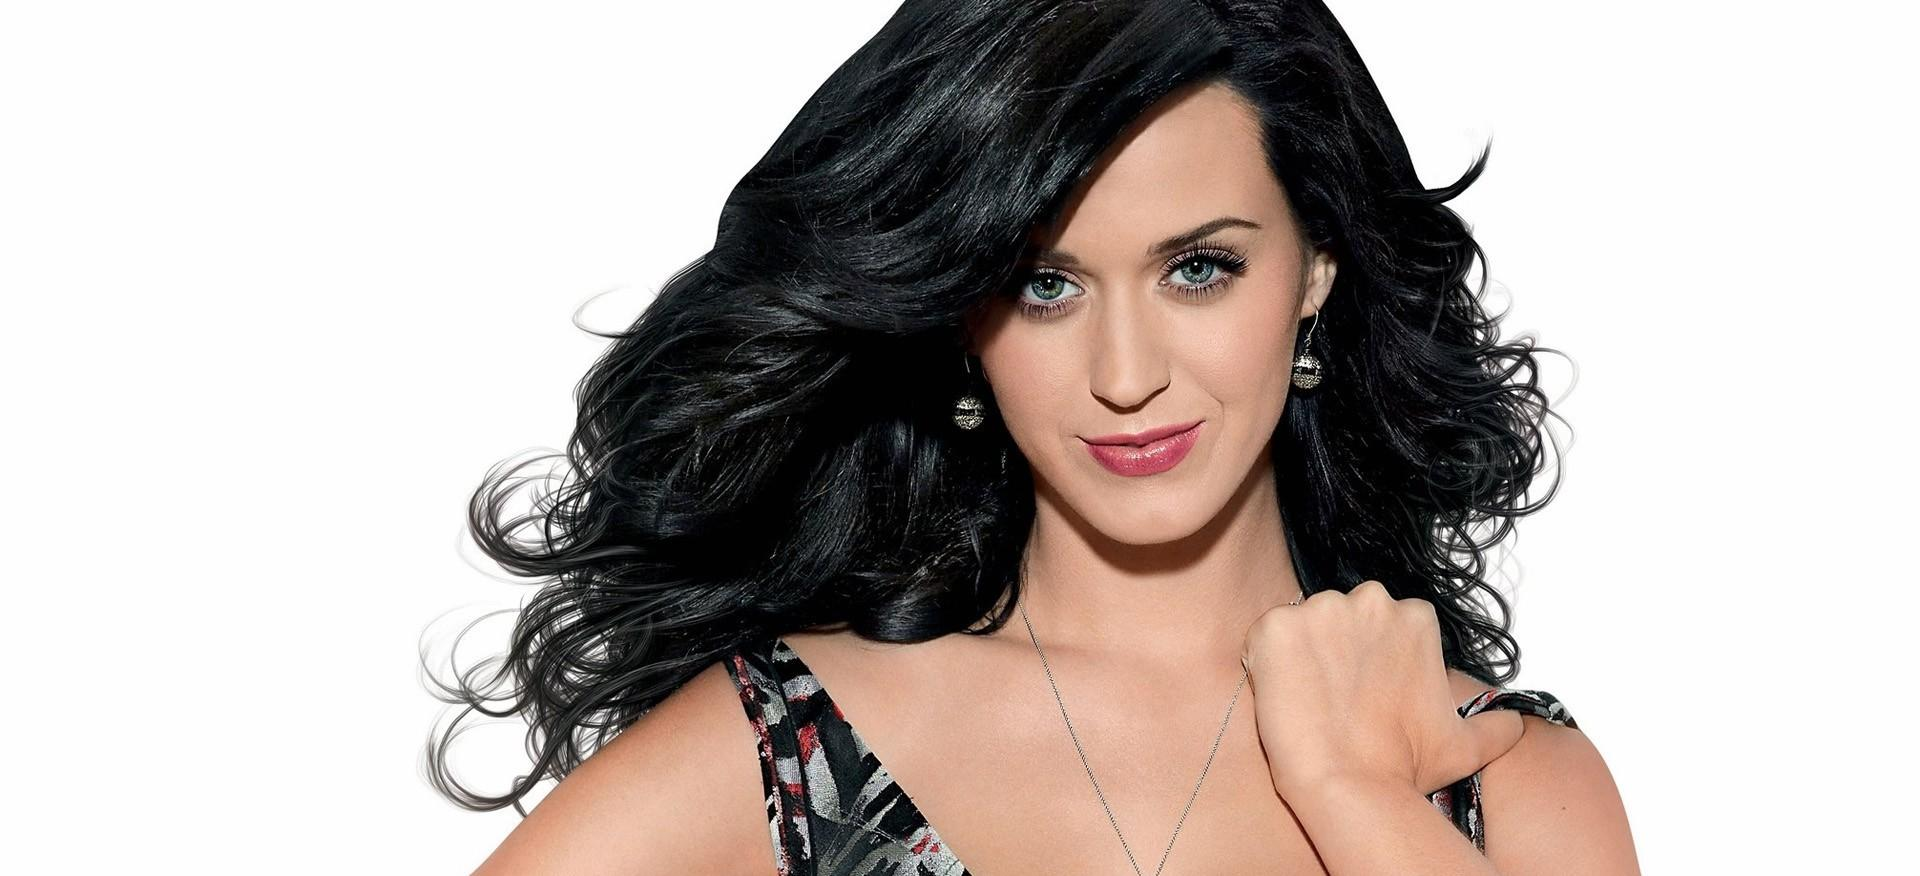 3-katy-perry3